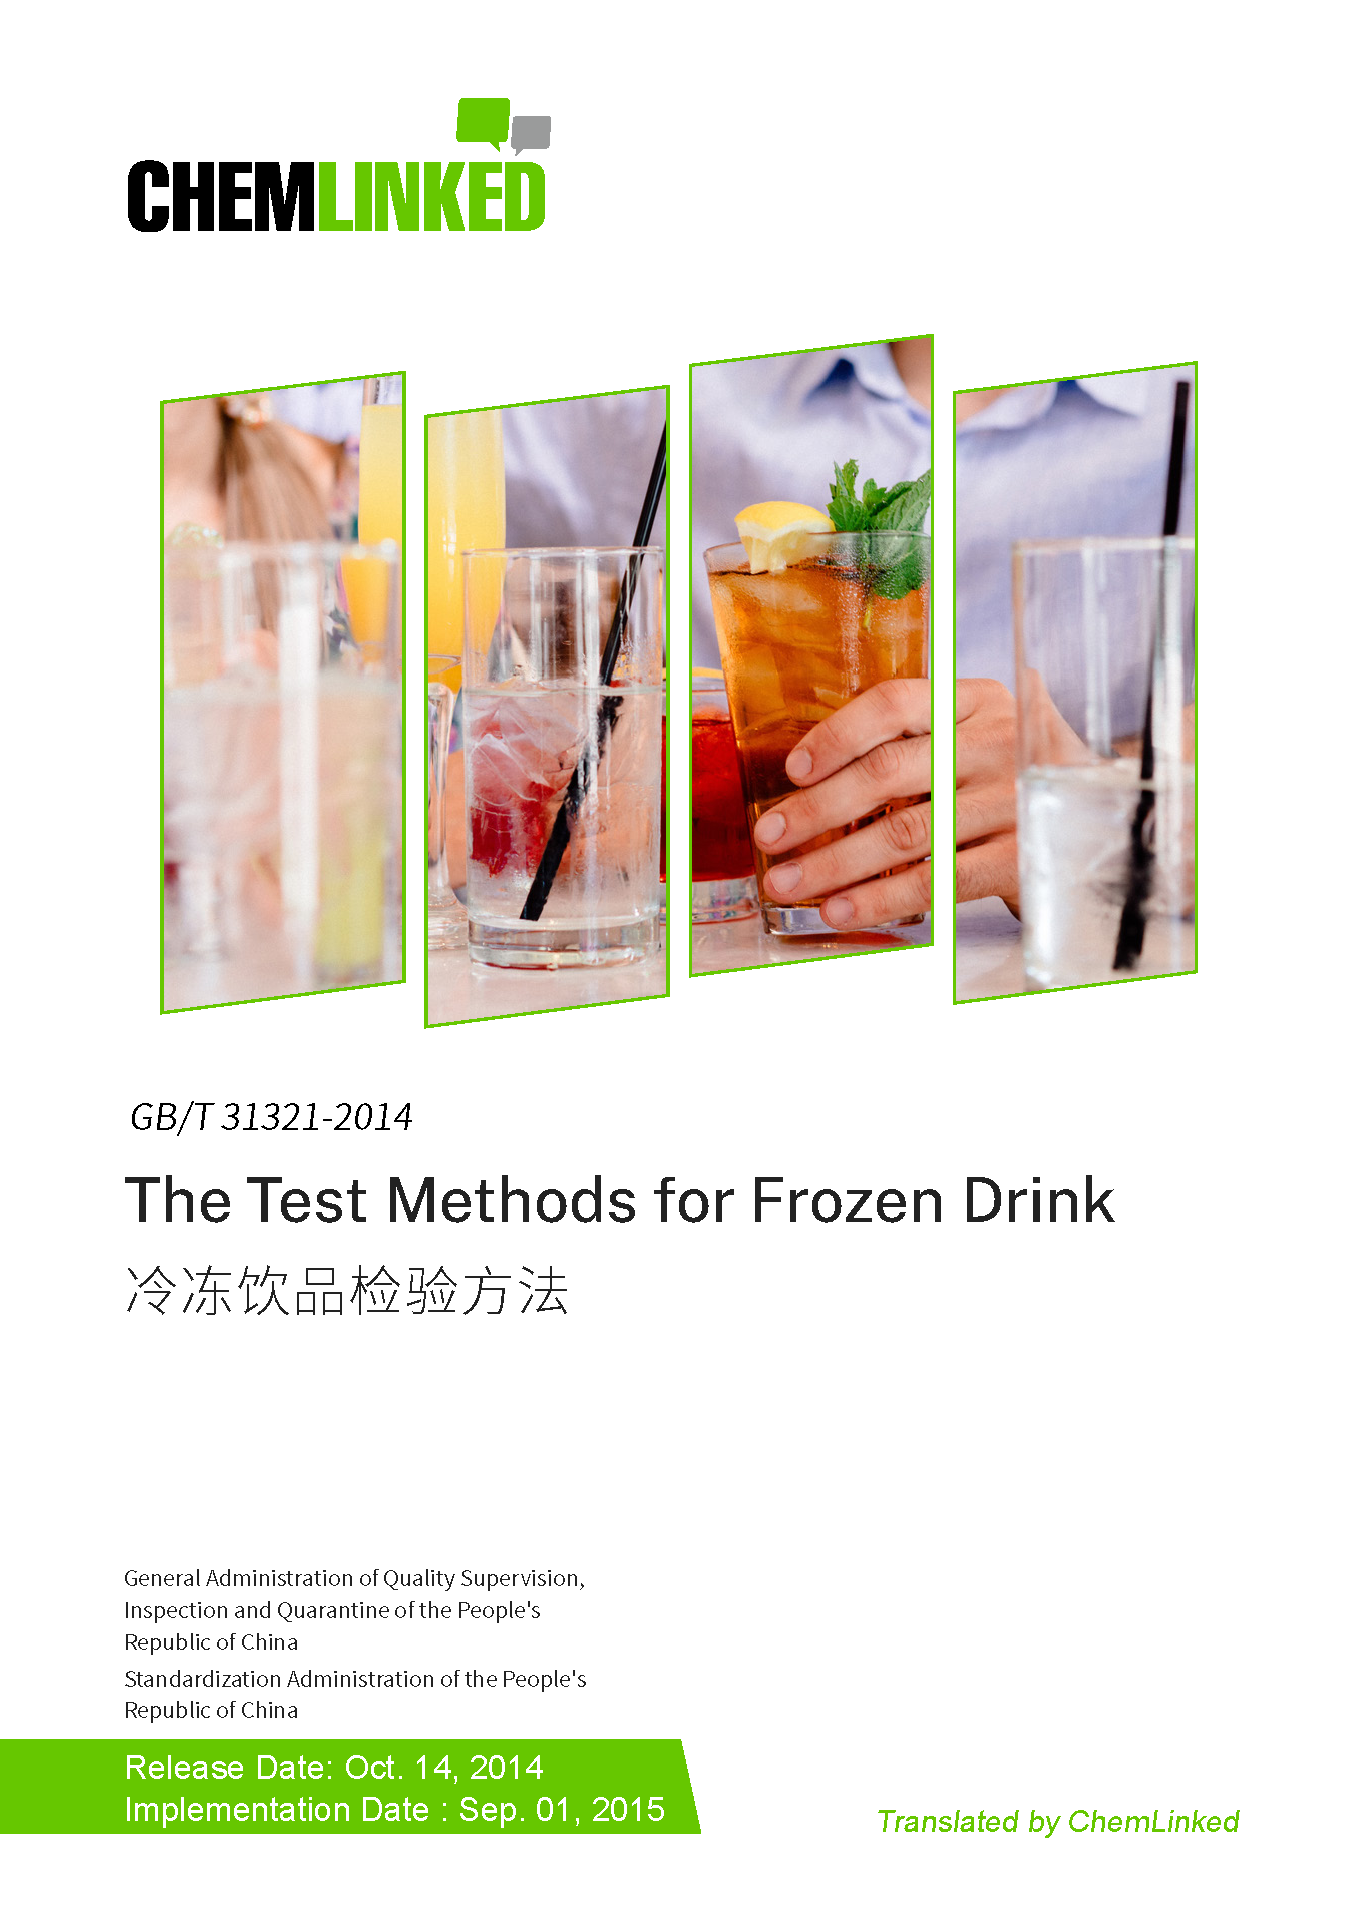 GB/T 31321-2014 Test Methods for Frozen Drink Products